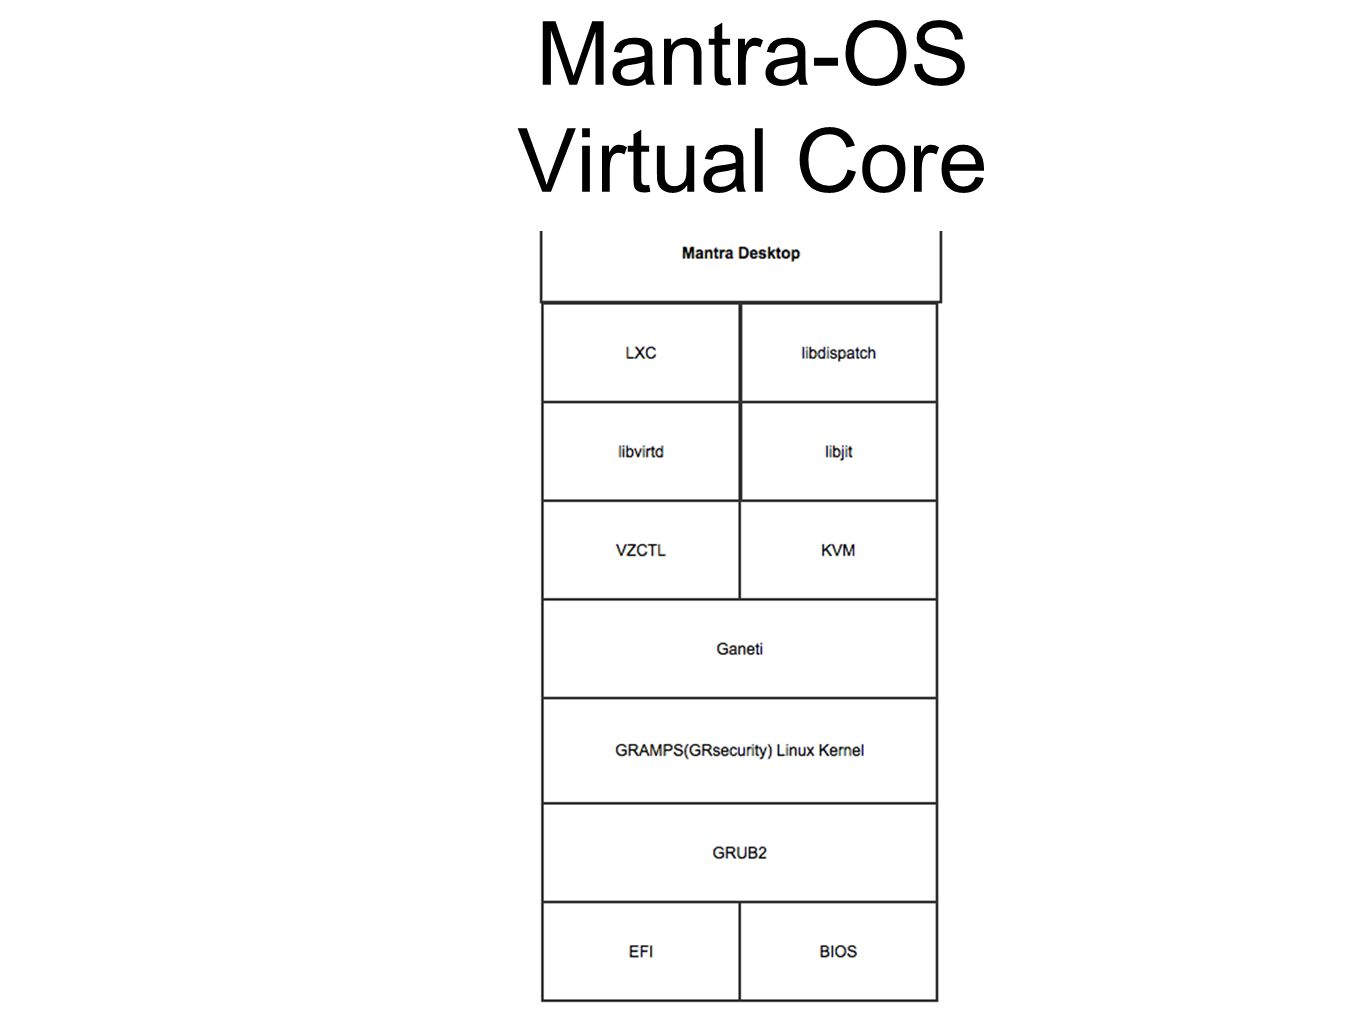 Mantra-OS Enhanced Security IDS protection with suricata Artillery and honeyd for IPS protection Container based sandboxing AppArmor, SElinux